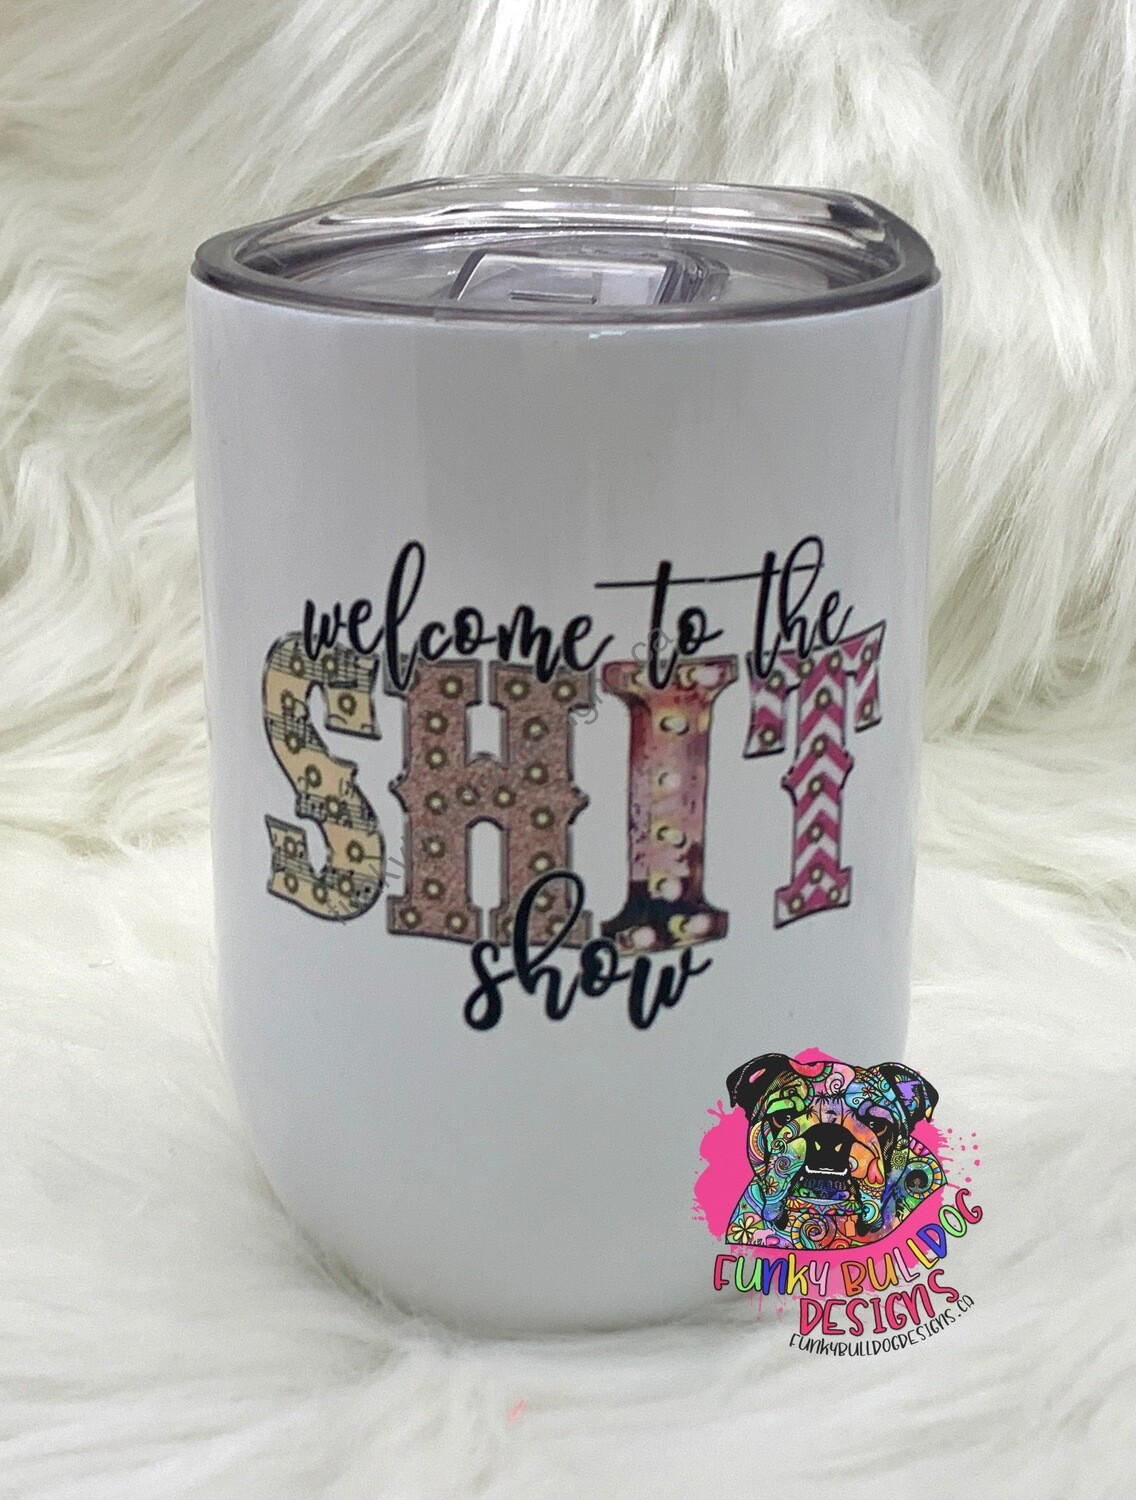 12oz Stainless Steel Wine Tumbler - Welcome to the $hit show